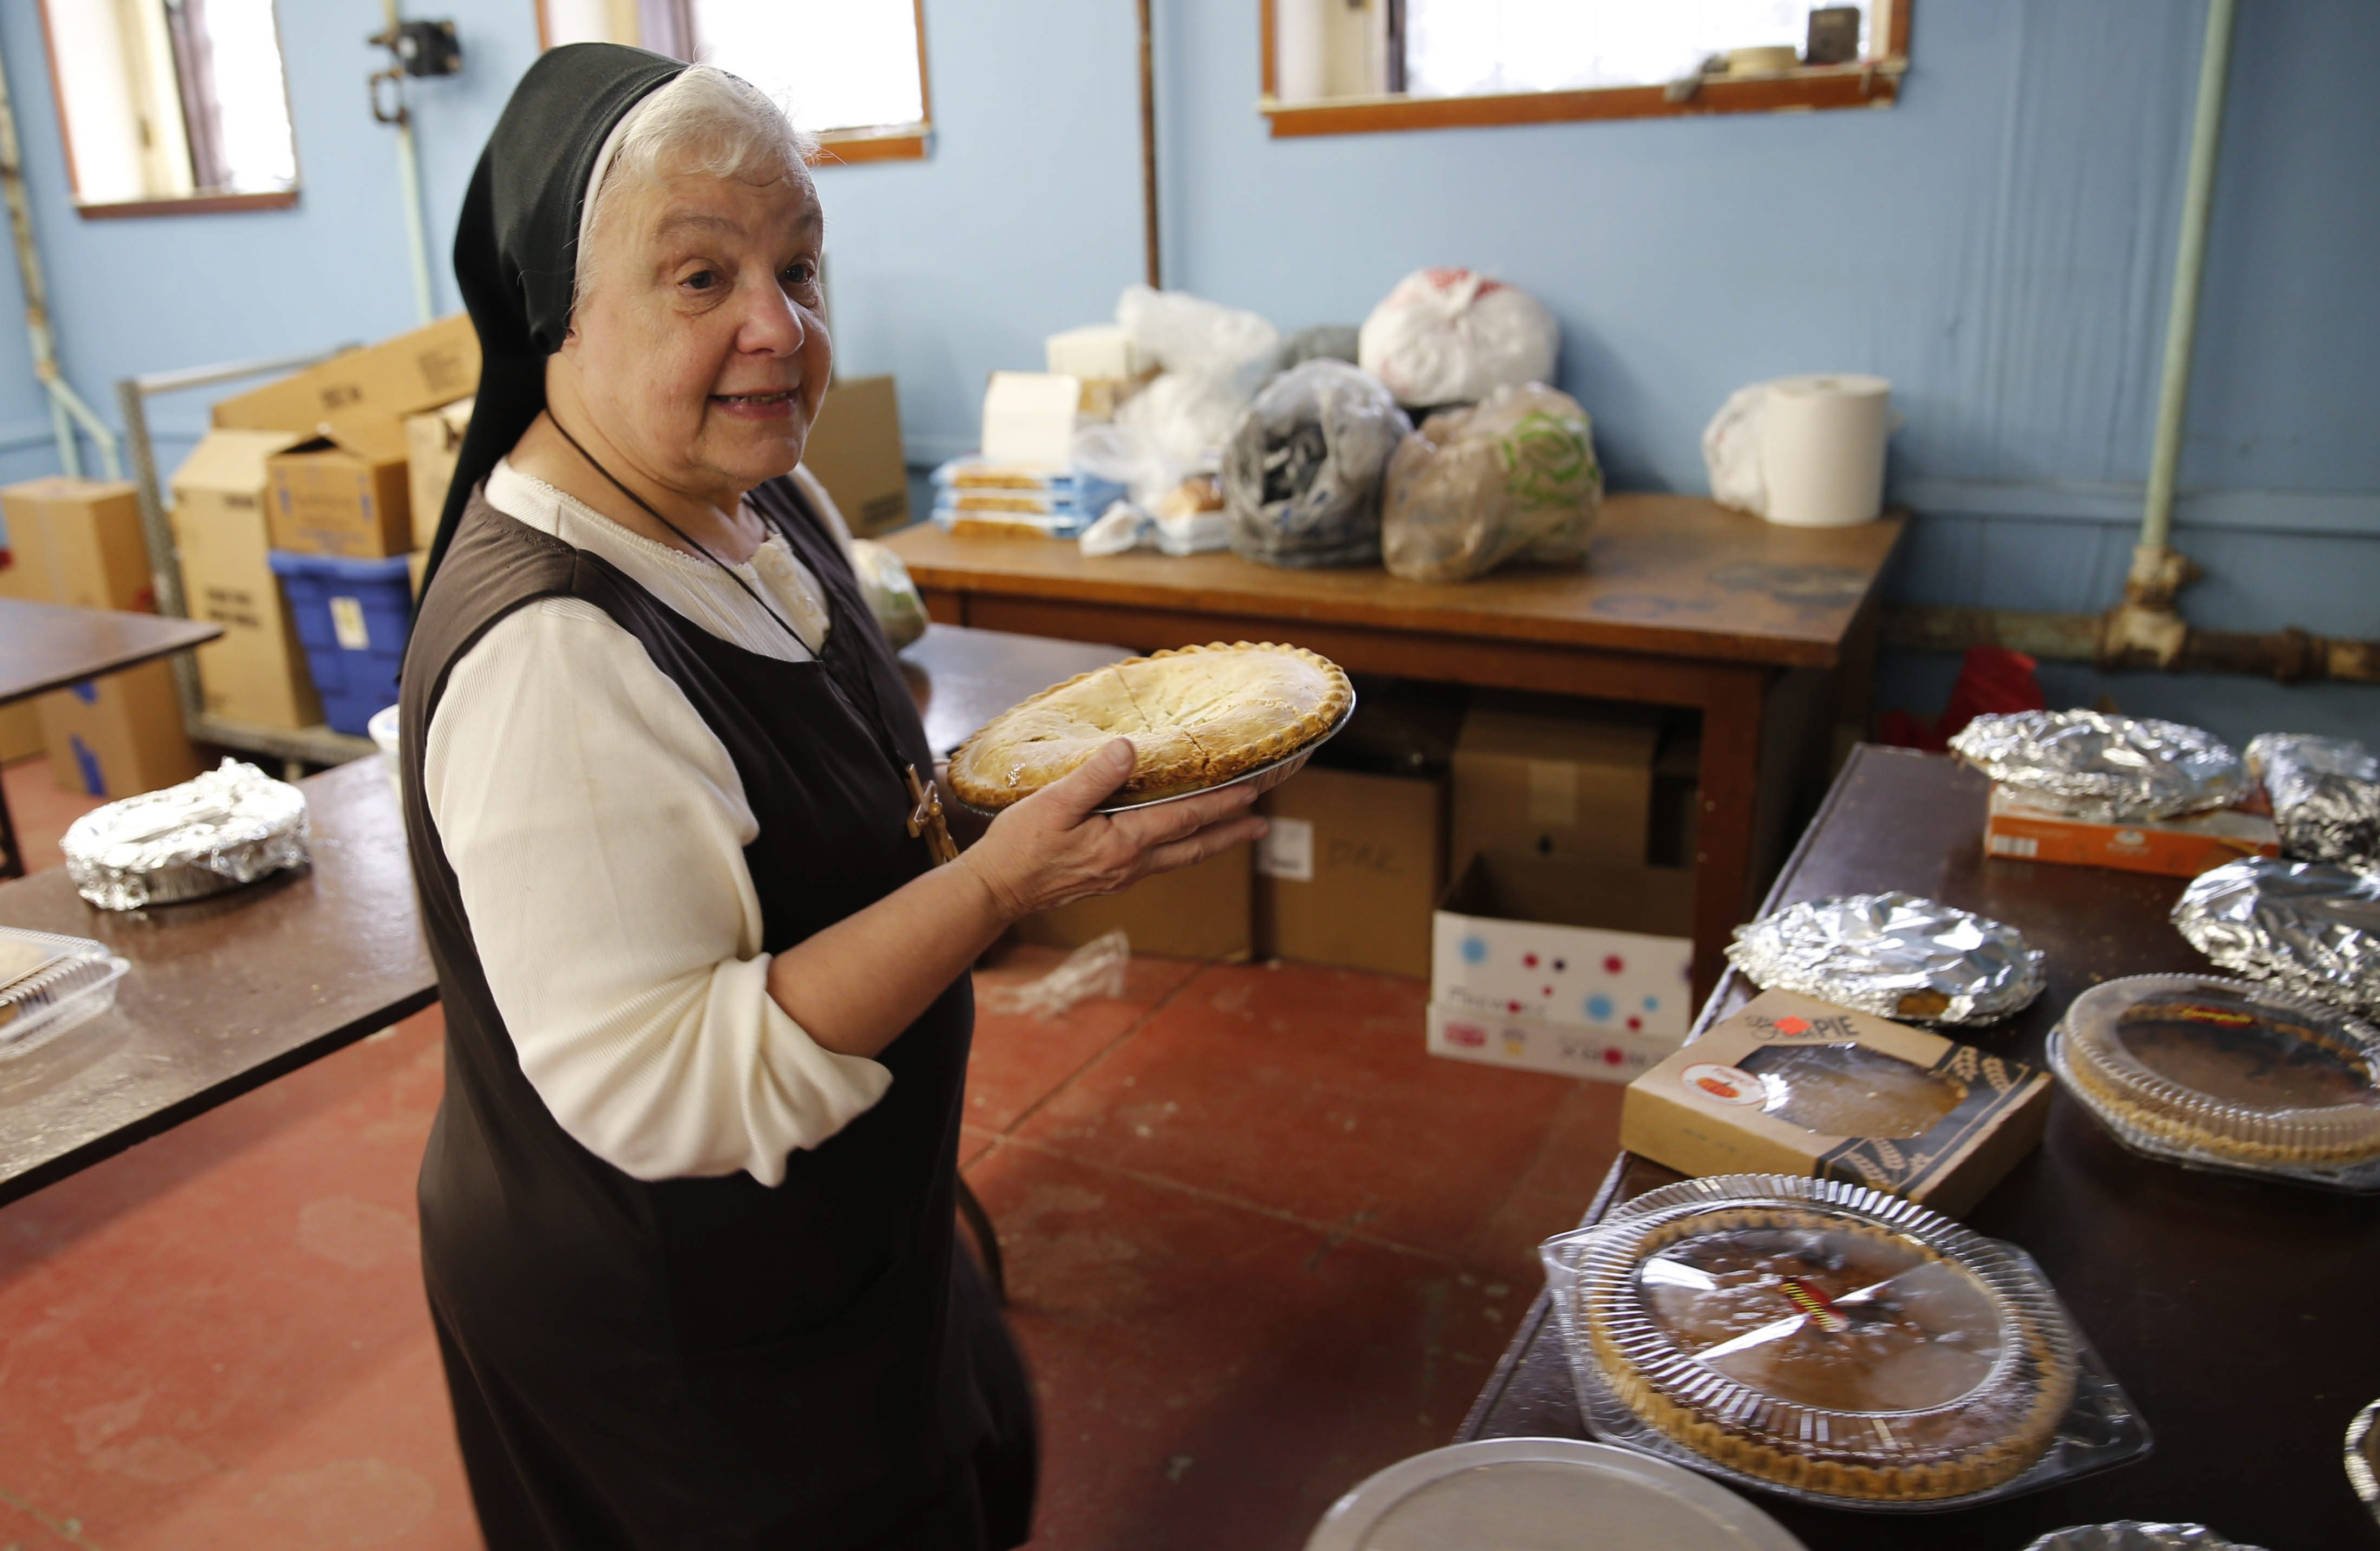 Sister Mary Johnice serves up pies at the 30th annual Thanksgiving dinner at the Response to Love Center on Thursday. Volunteers expected to serve between 200 and 300 holiday meals to people in need.